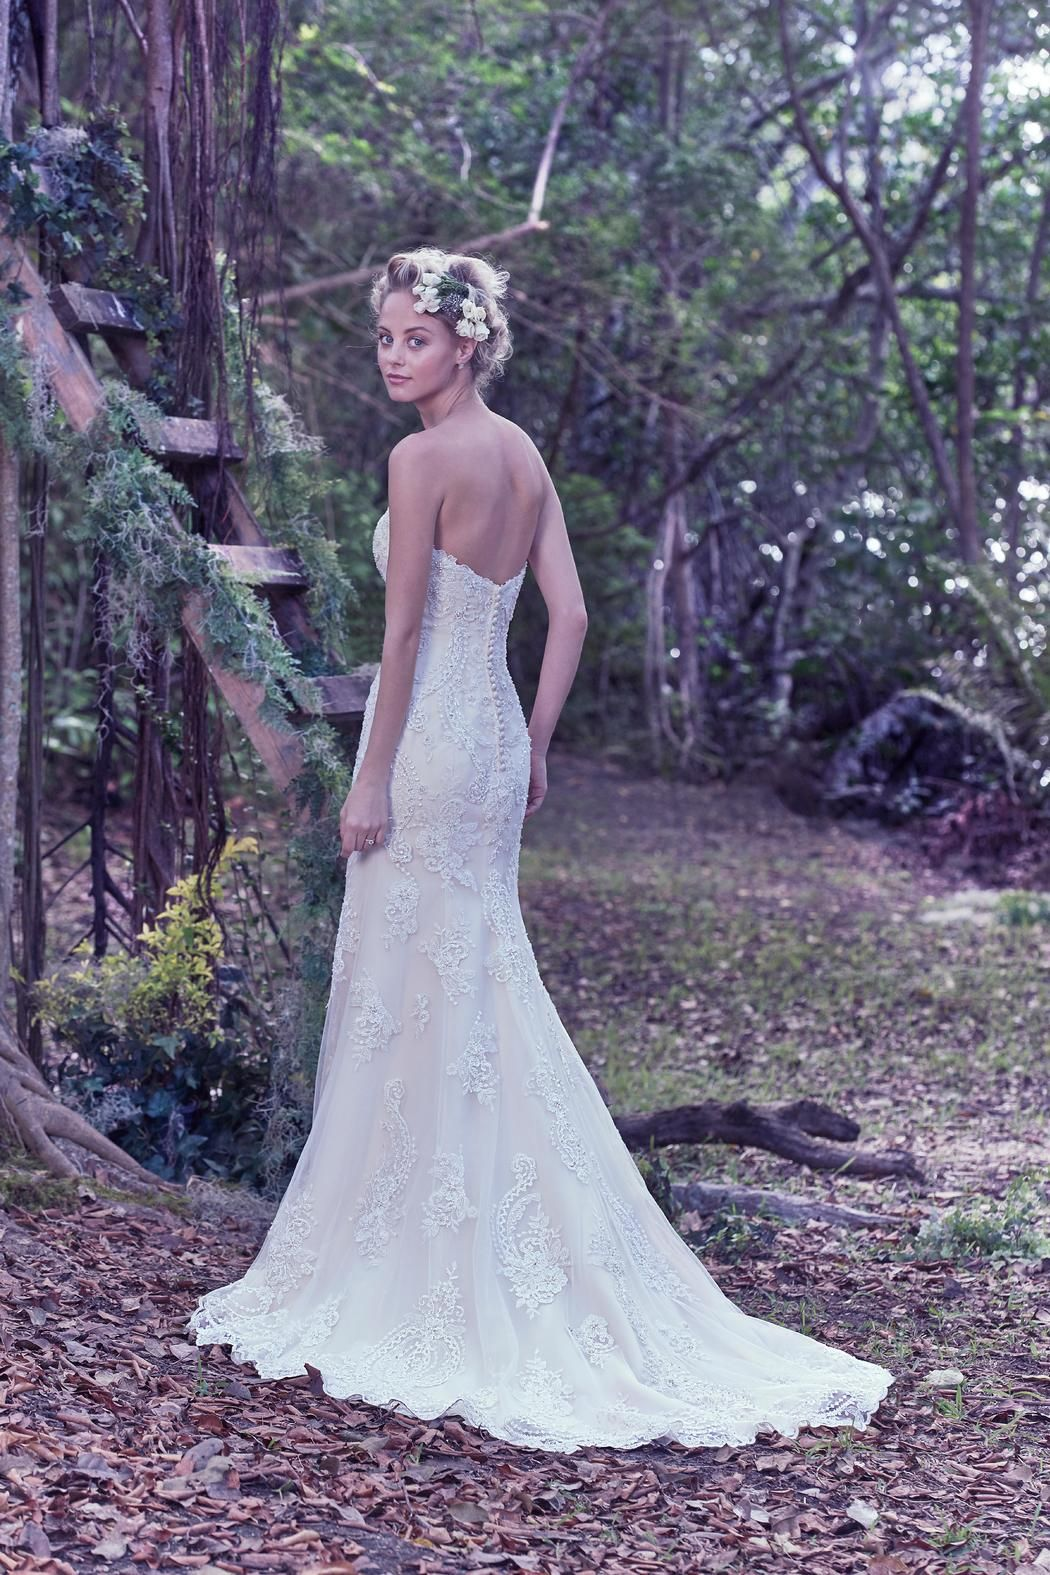 Romance is found in this classic tulle and lace sheath wedding dress